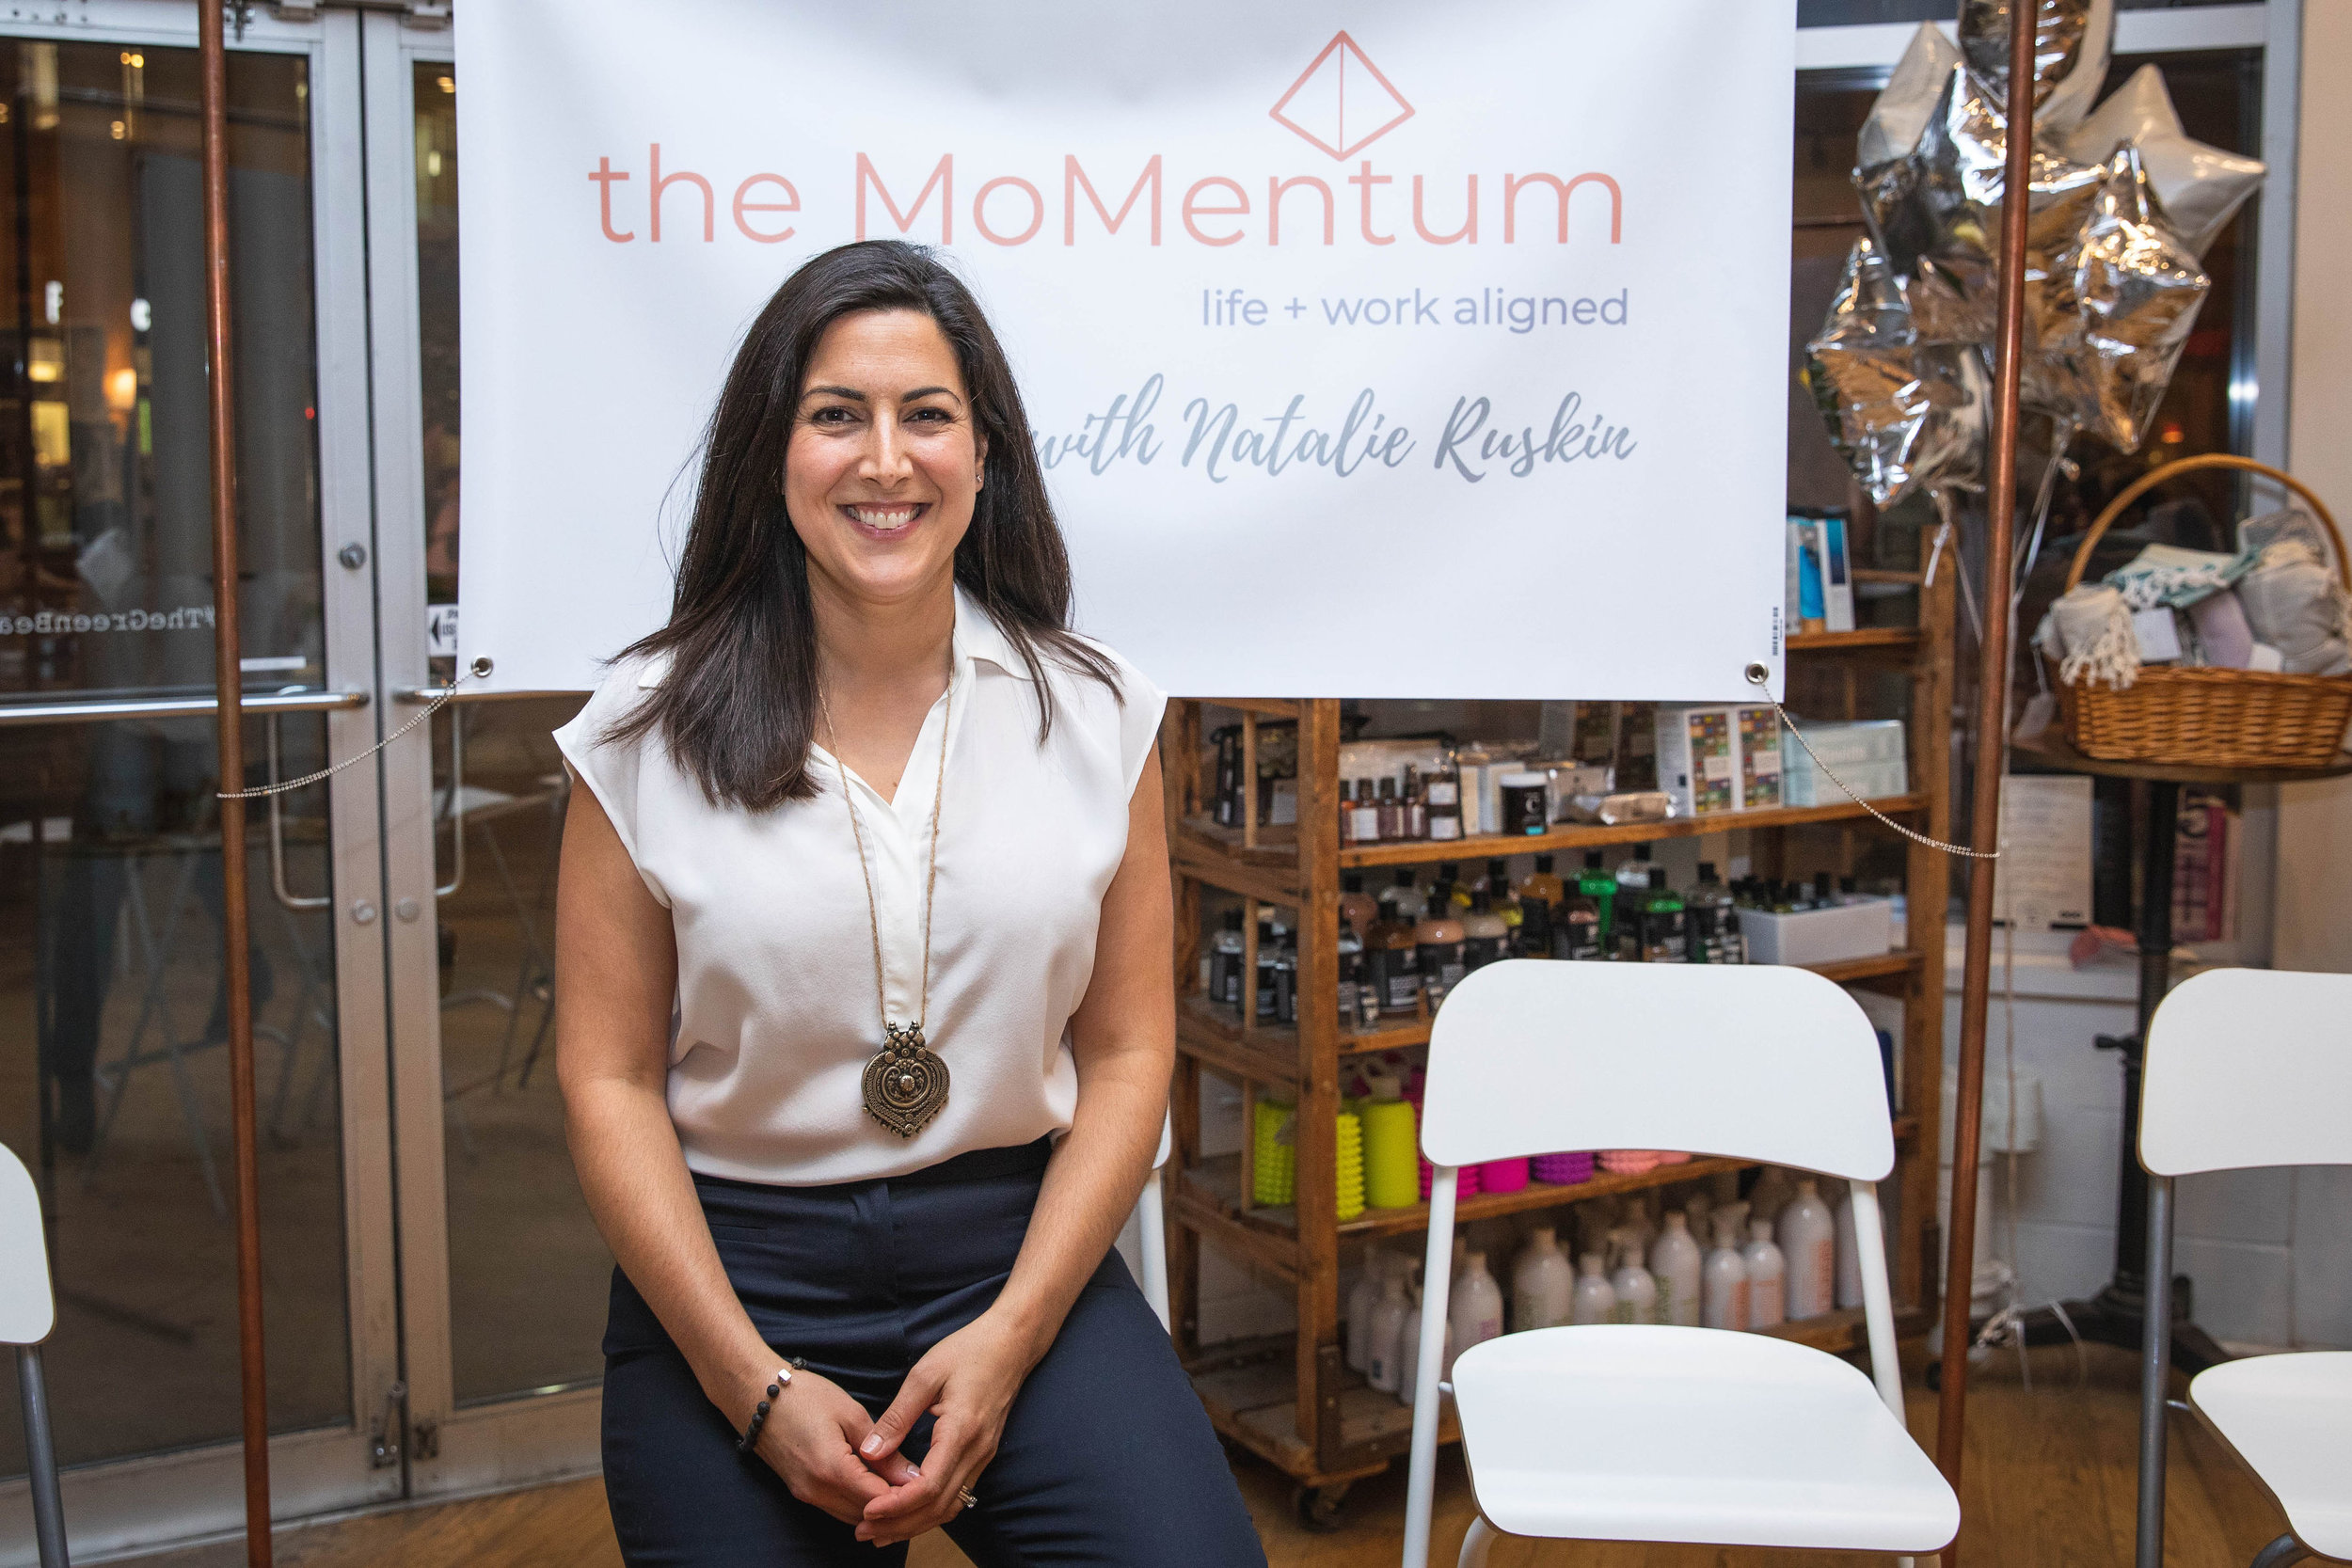 The MoMentum - You're a working mom and ready to discover and build work that is impactful and sustainable for you.